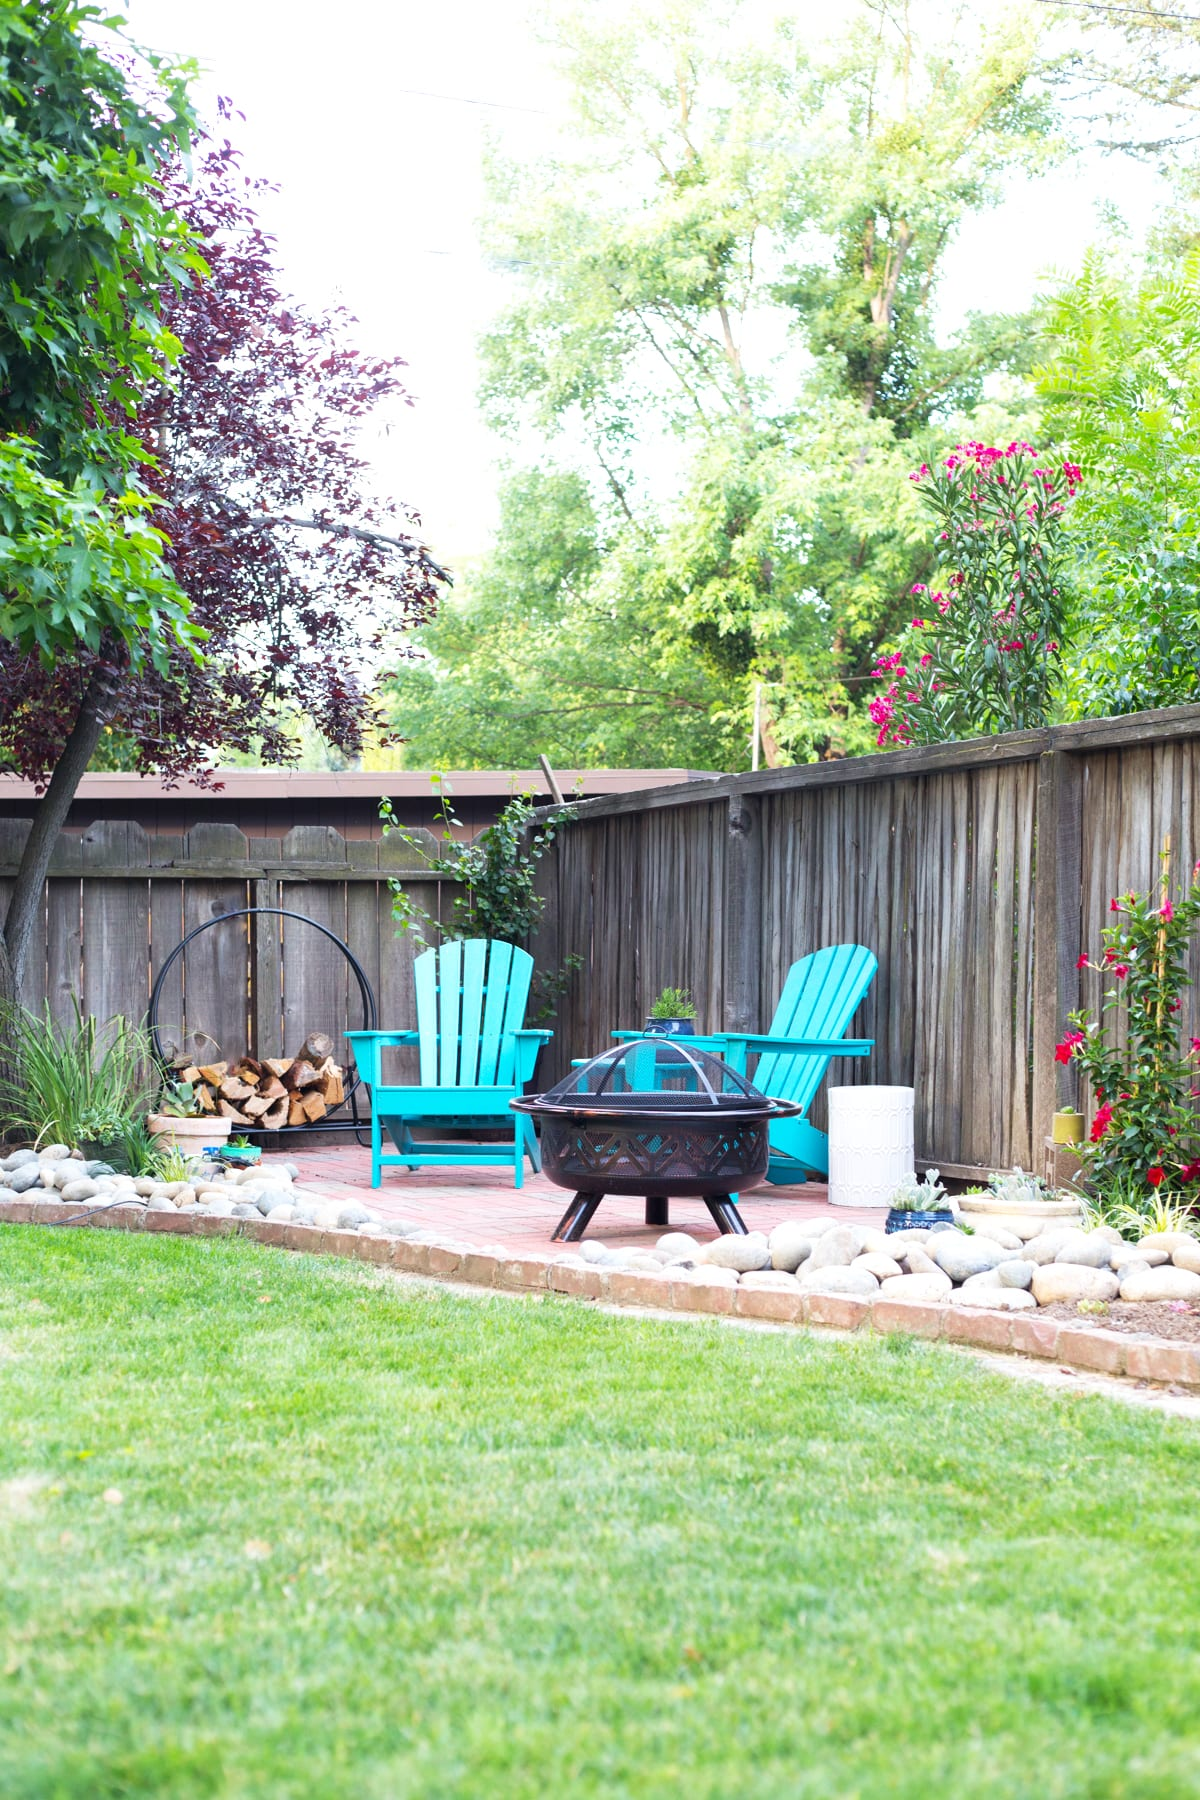 DIY Backyard Patio | Lovely Indeed on Basic Patio Ideas id=83089